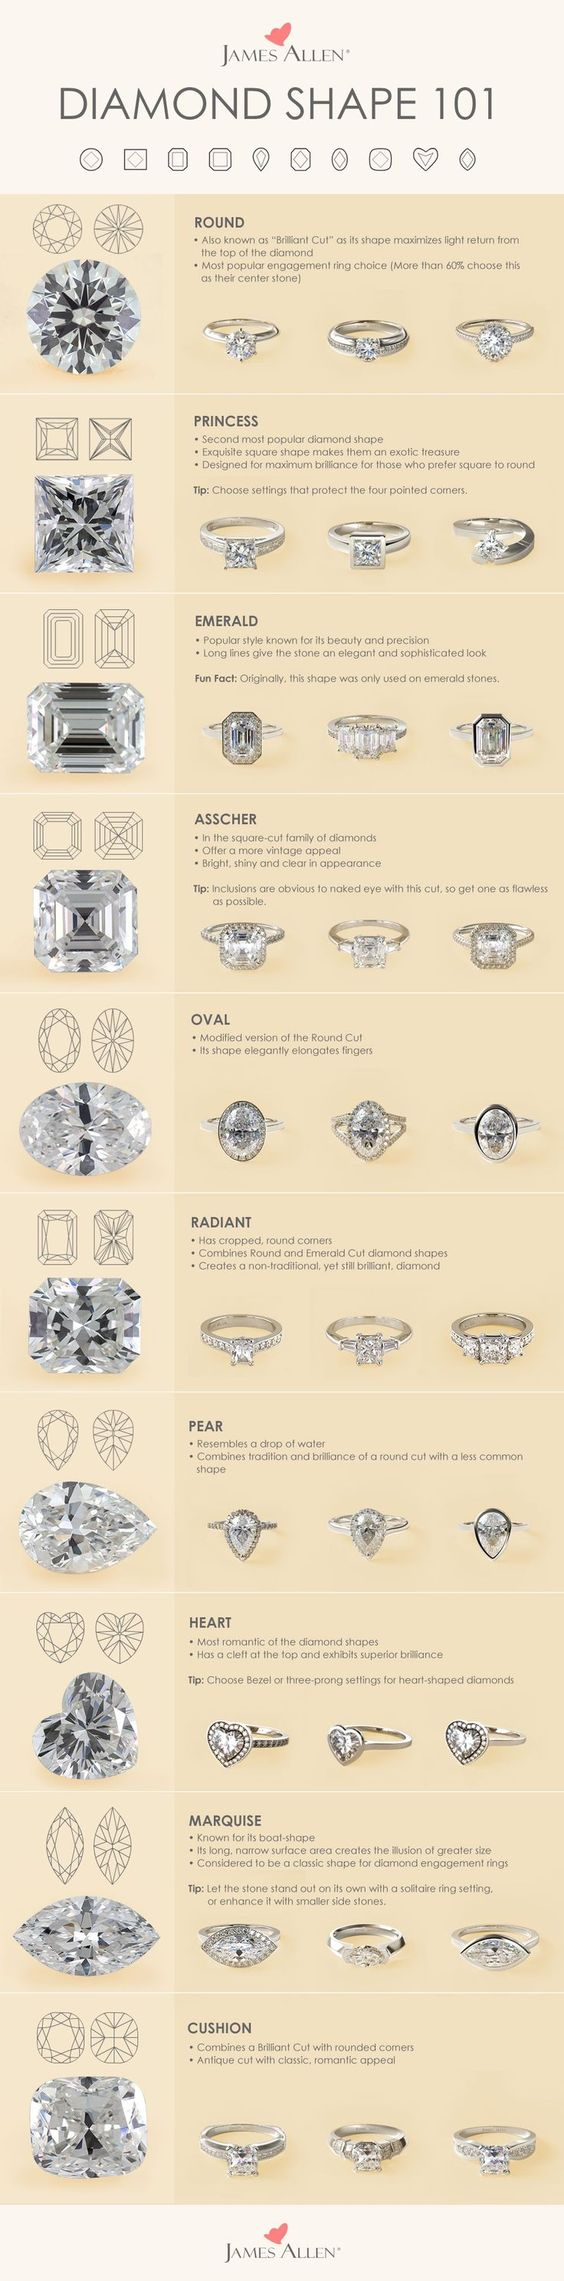 A shape for each type of engagement ring. Each diamond shape possesses its own unique qualities. James Allen offers the highest quality certified conflict-free diamonds to satisfy all tastes.   Browse these diamond shapes in 360° HD on http://jamesallen.com. #Jamesallenrings